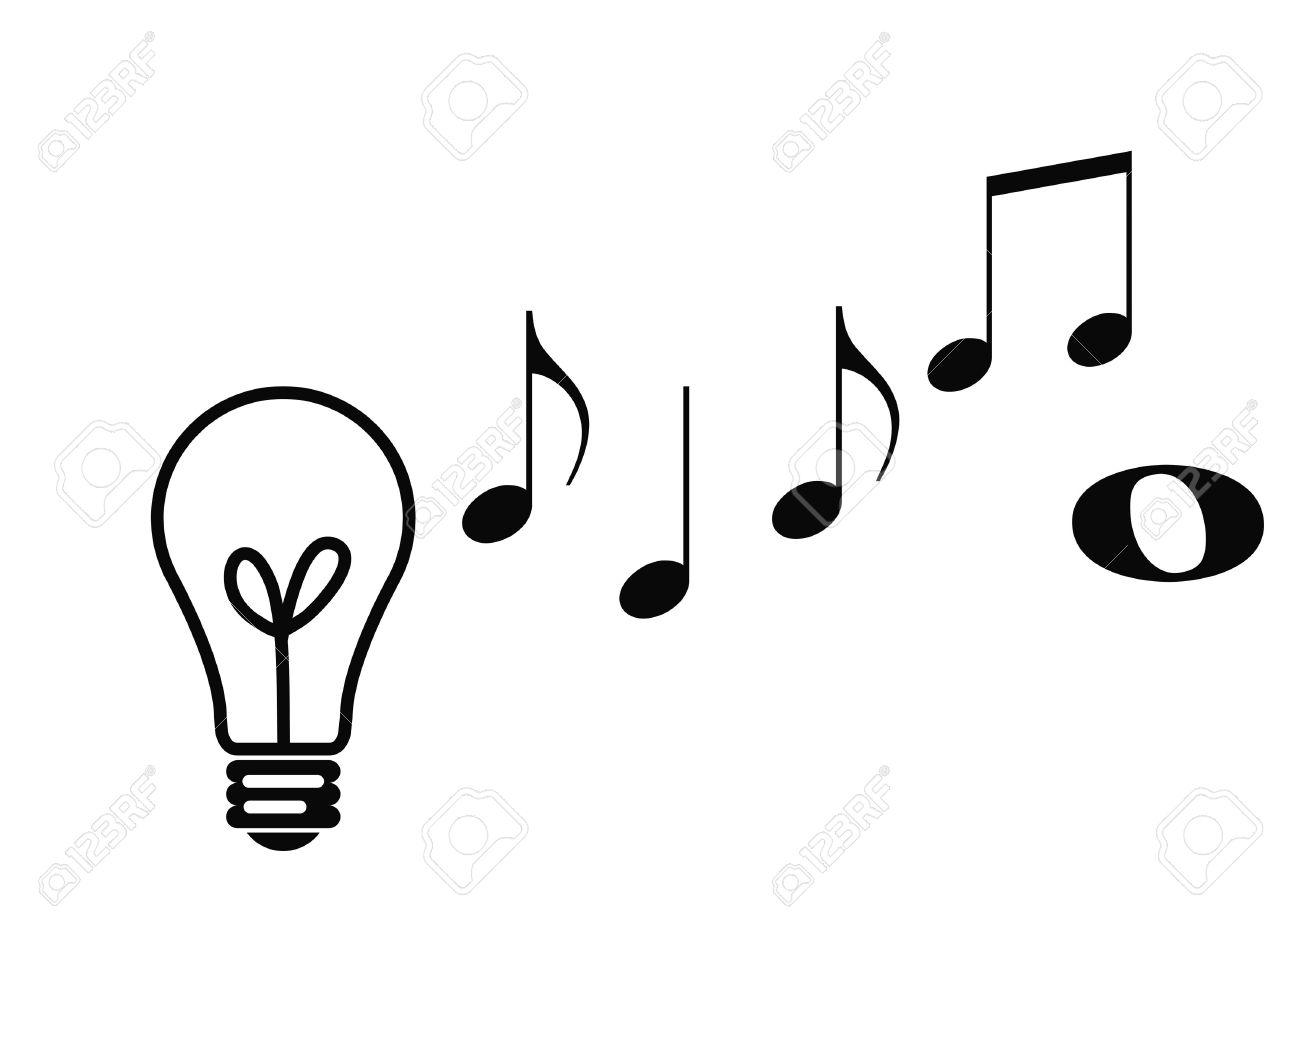 conceptual view of musical notes rising from lightbulb depicting